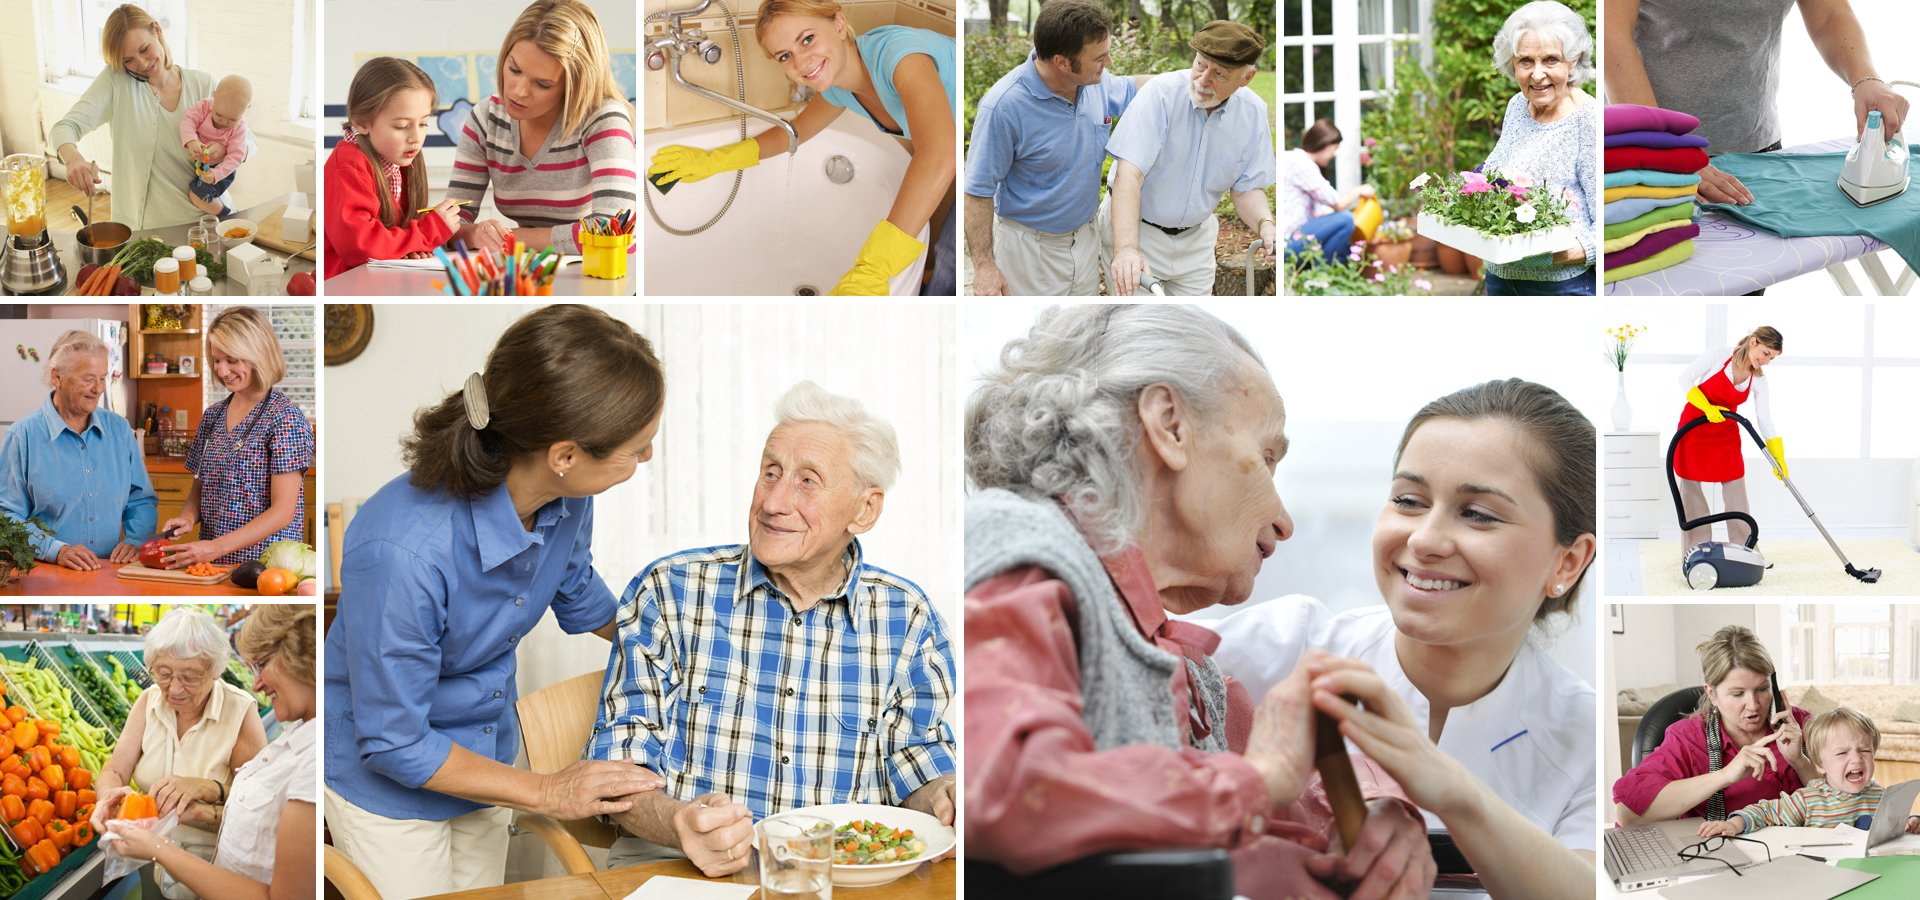 Home Help Services For Jobs You Need Help with Around the Home